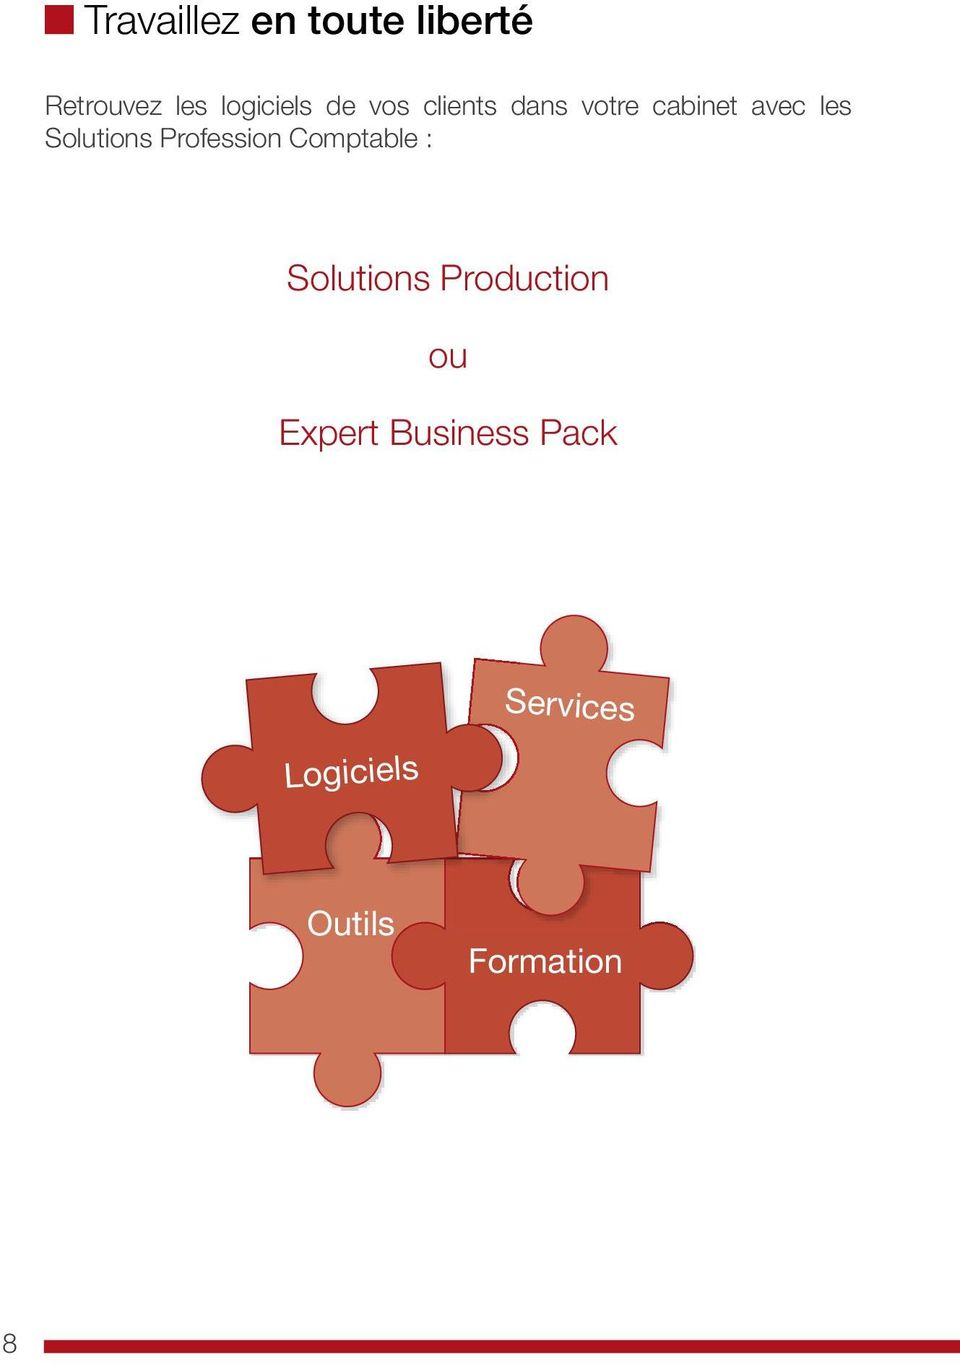 Profession Comptable : Solutions Production ou